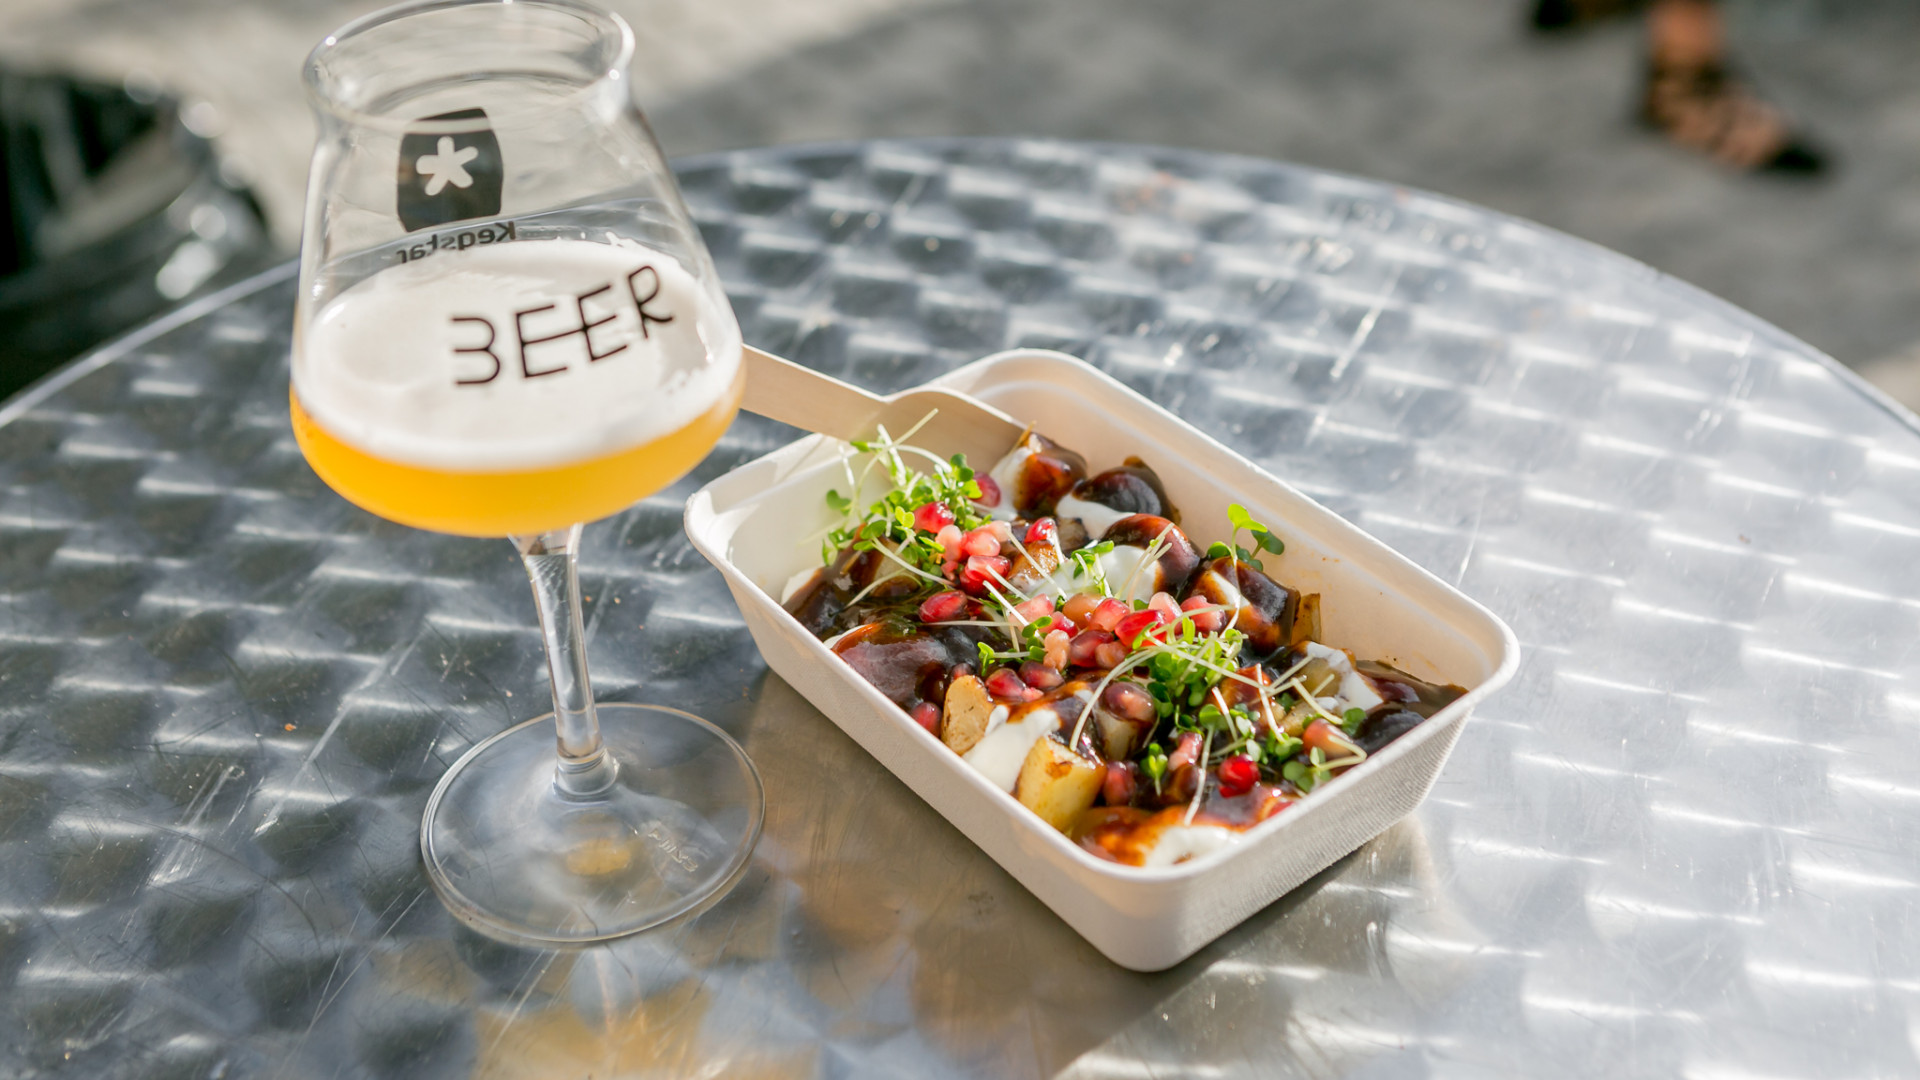 Food at London Craft Beer Festival